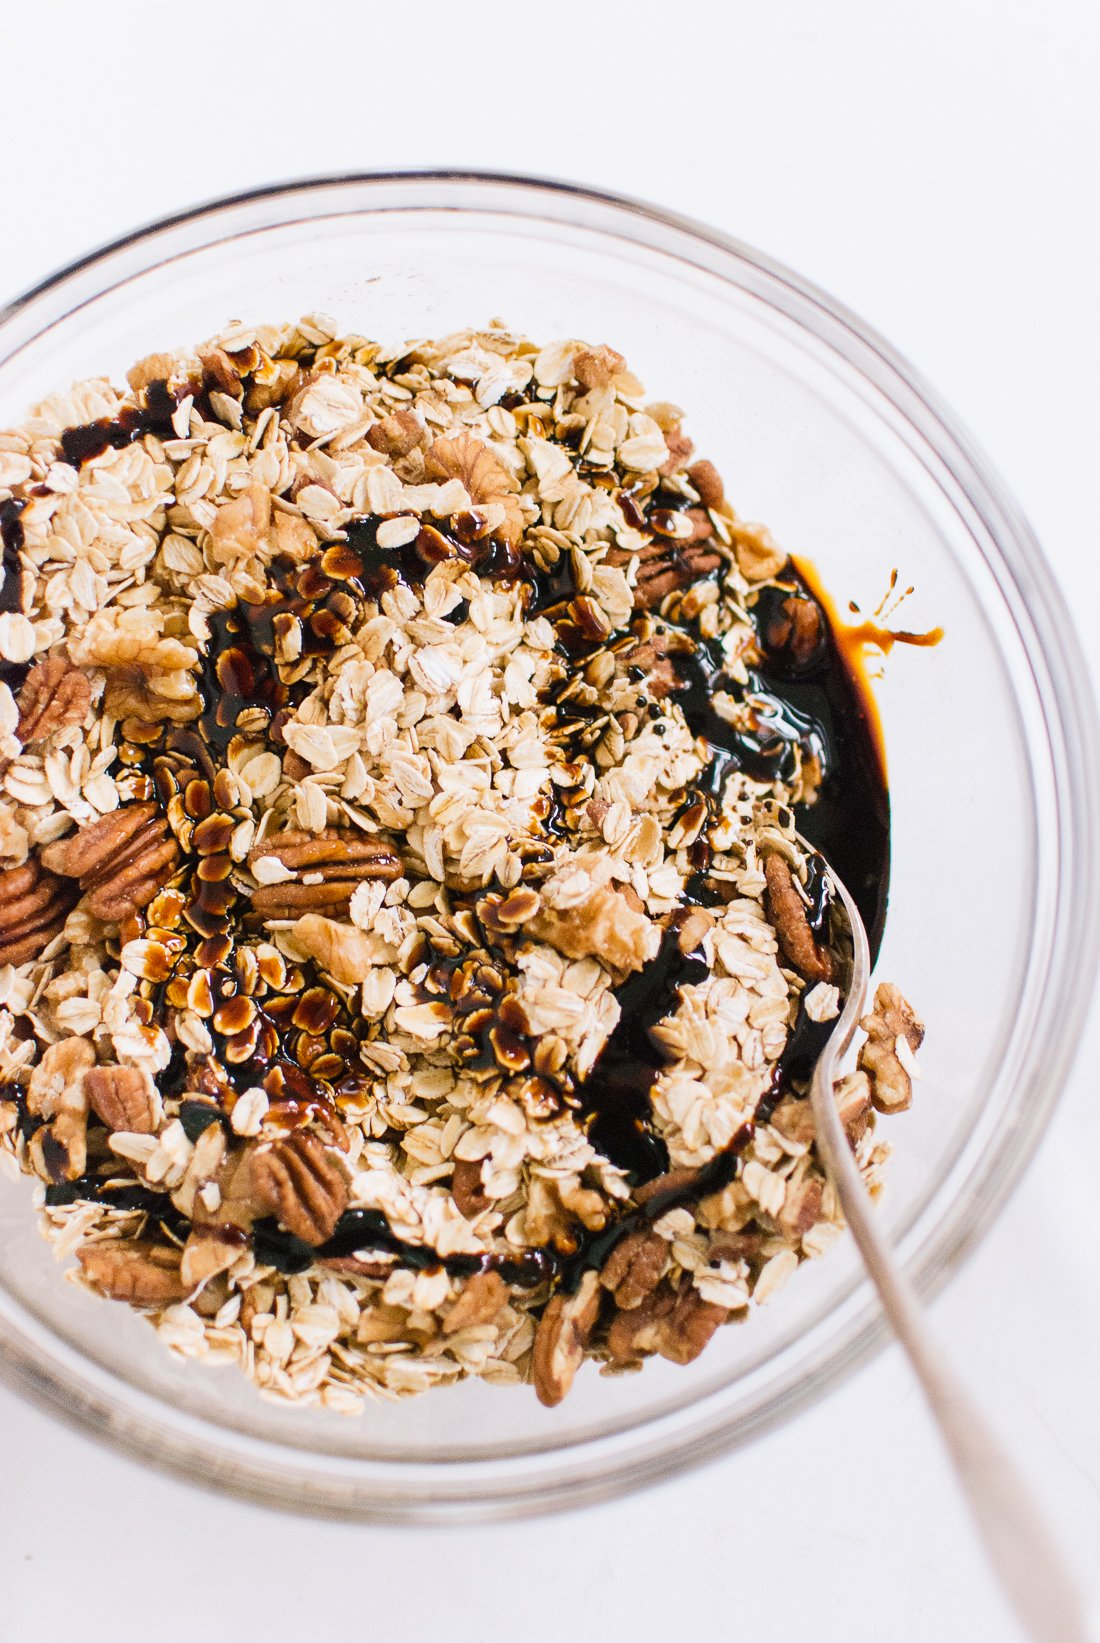 oats, nuts, molasses and maple syrup